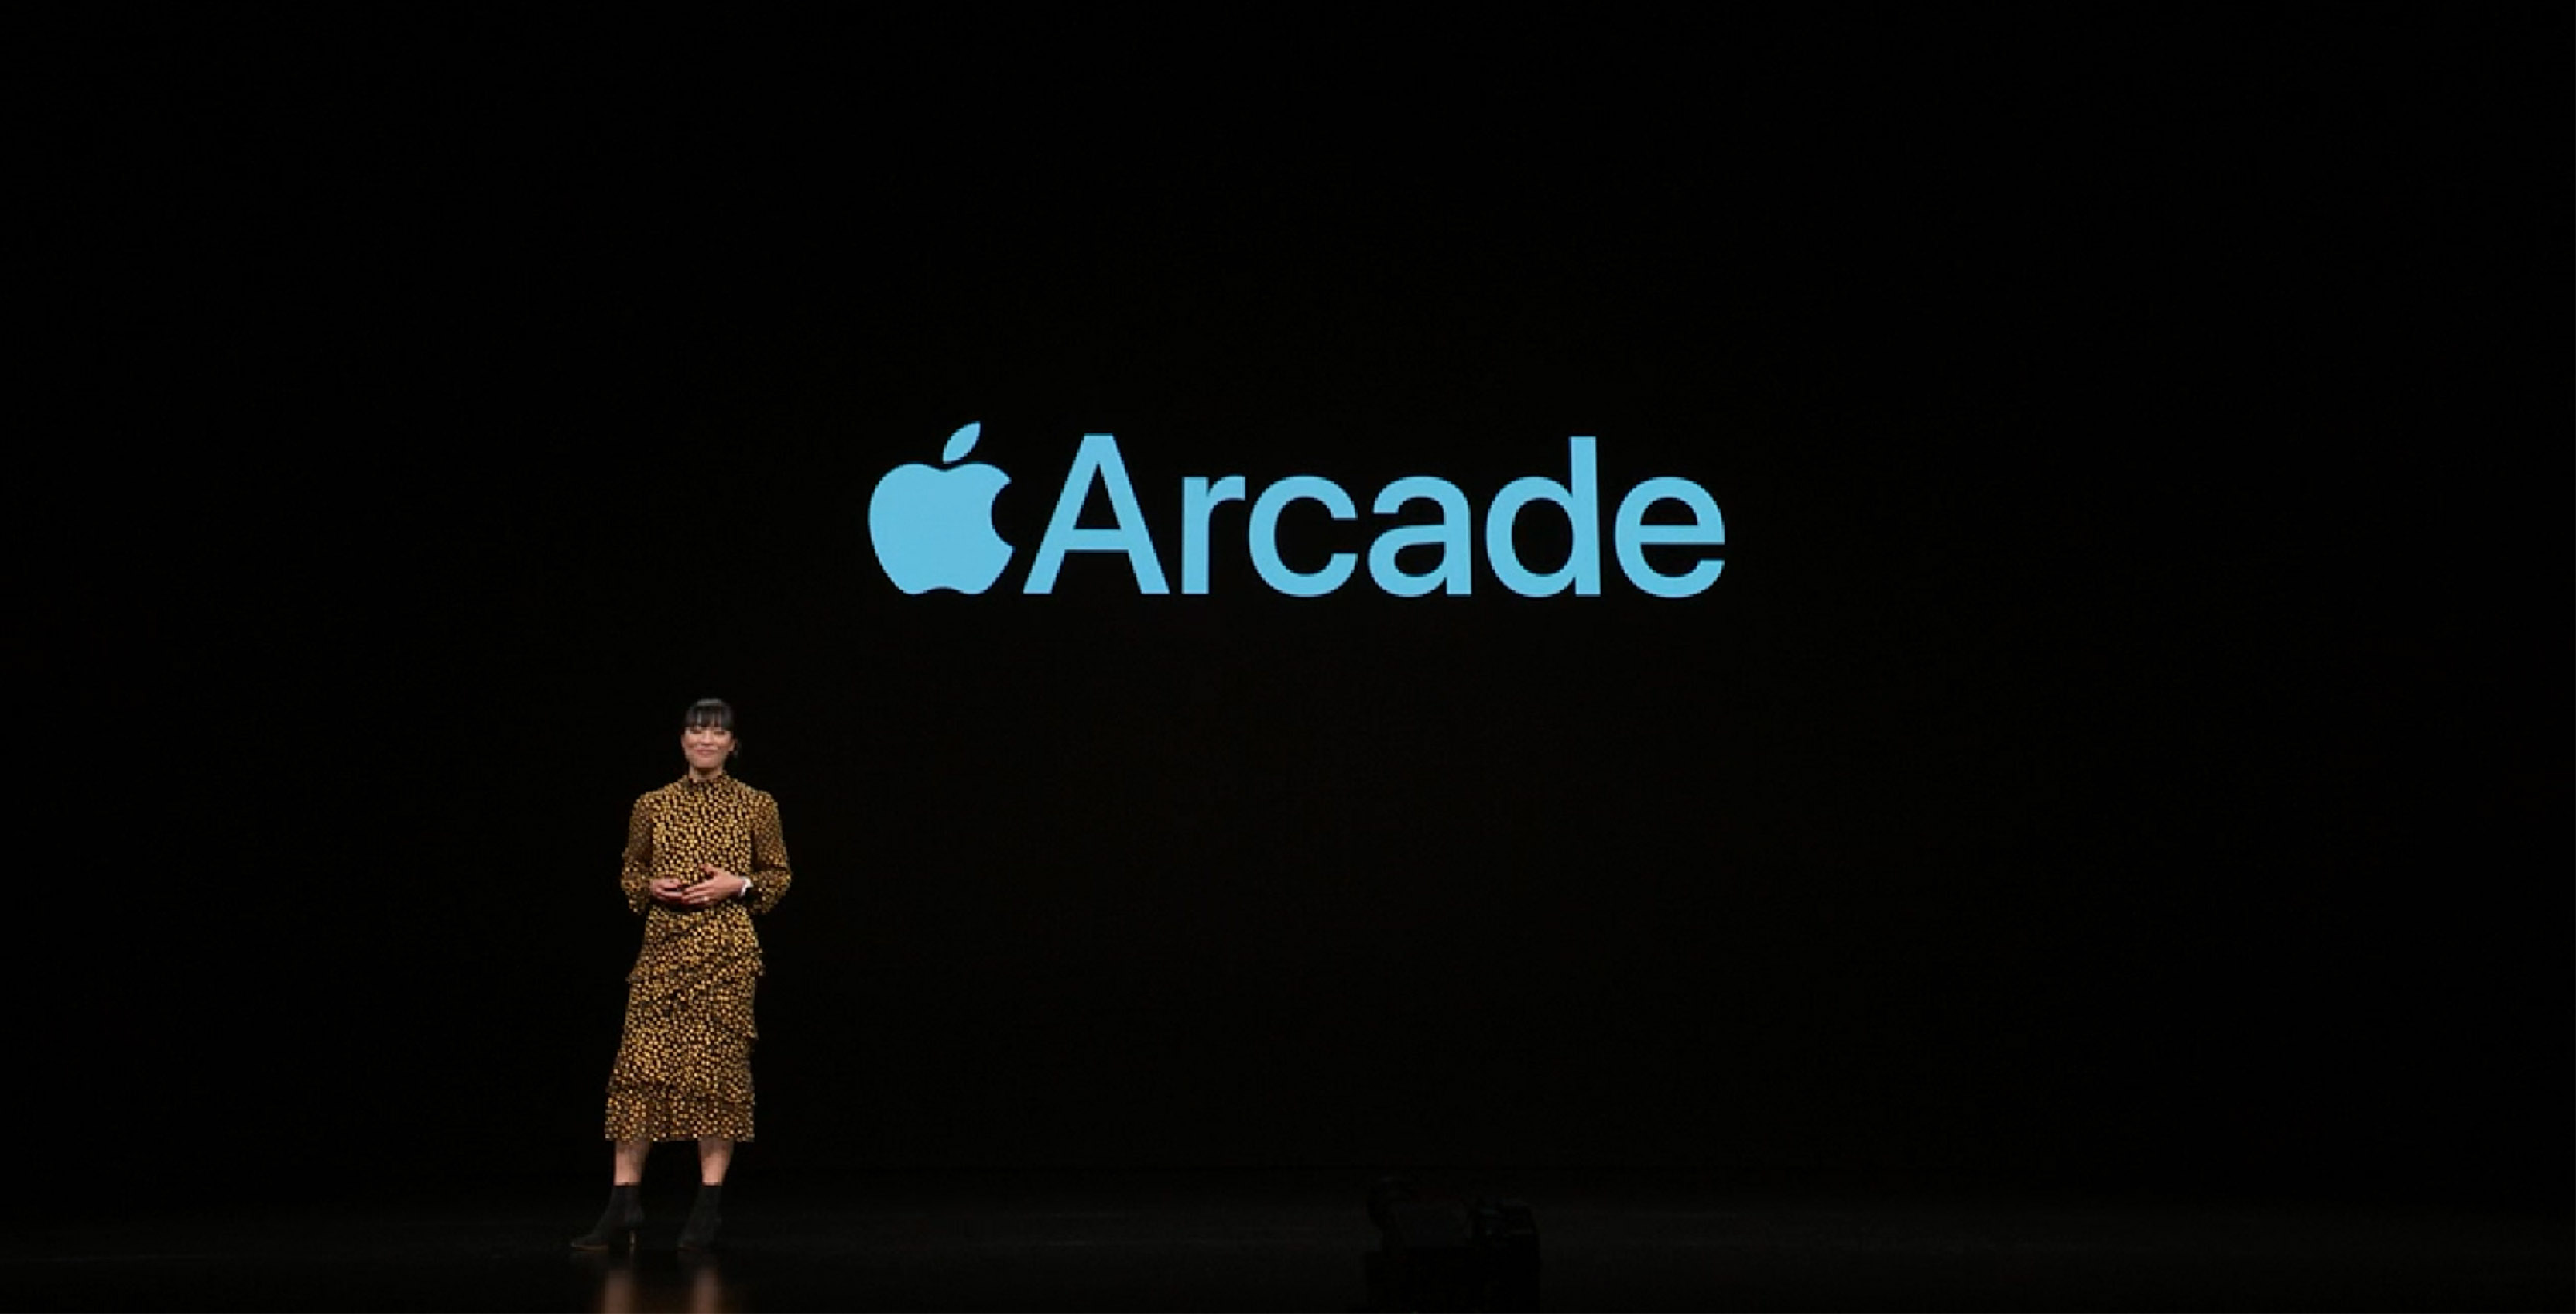 Take a look at Apple Arcade's beta in these leaked images